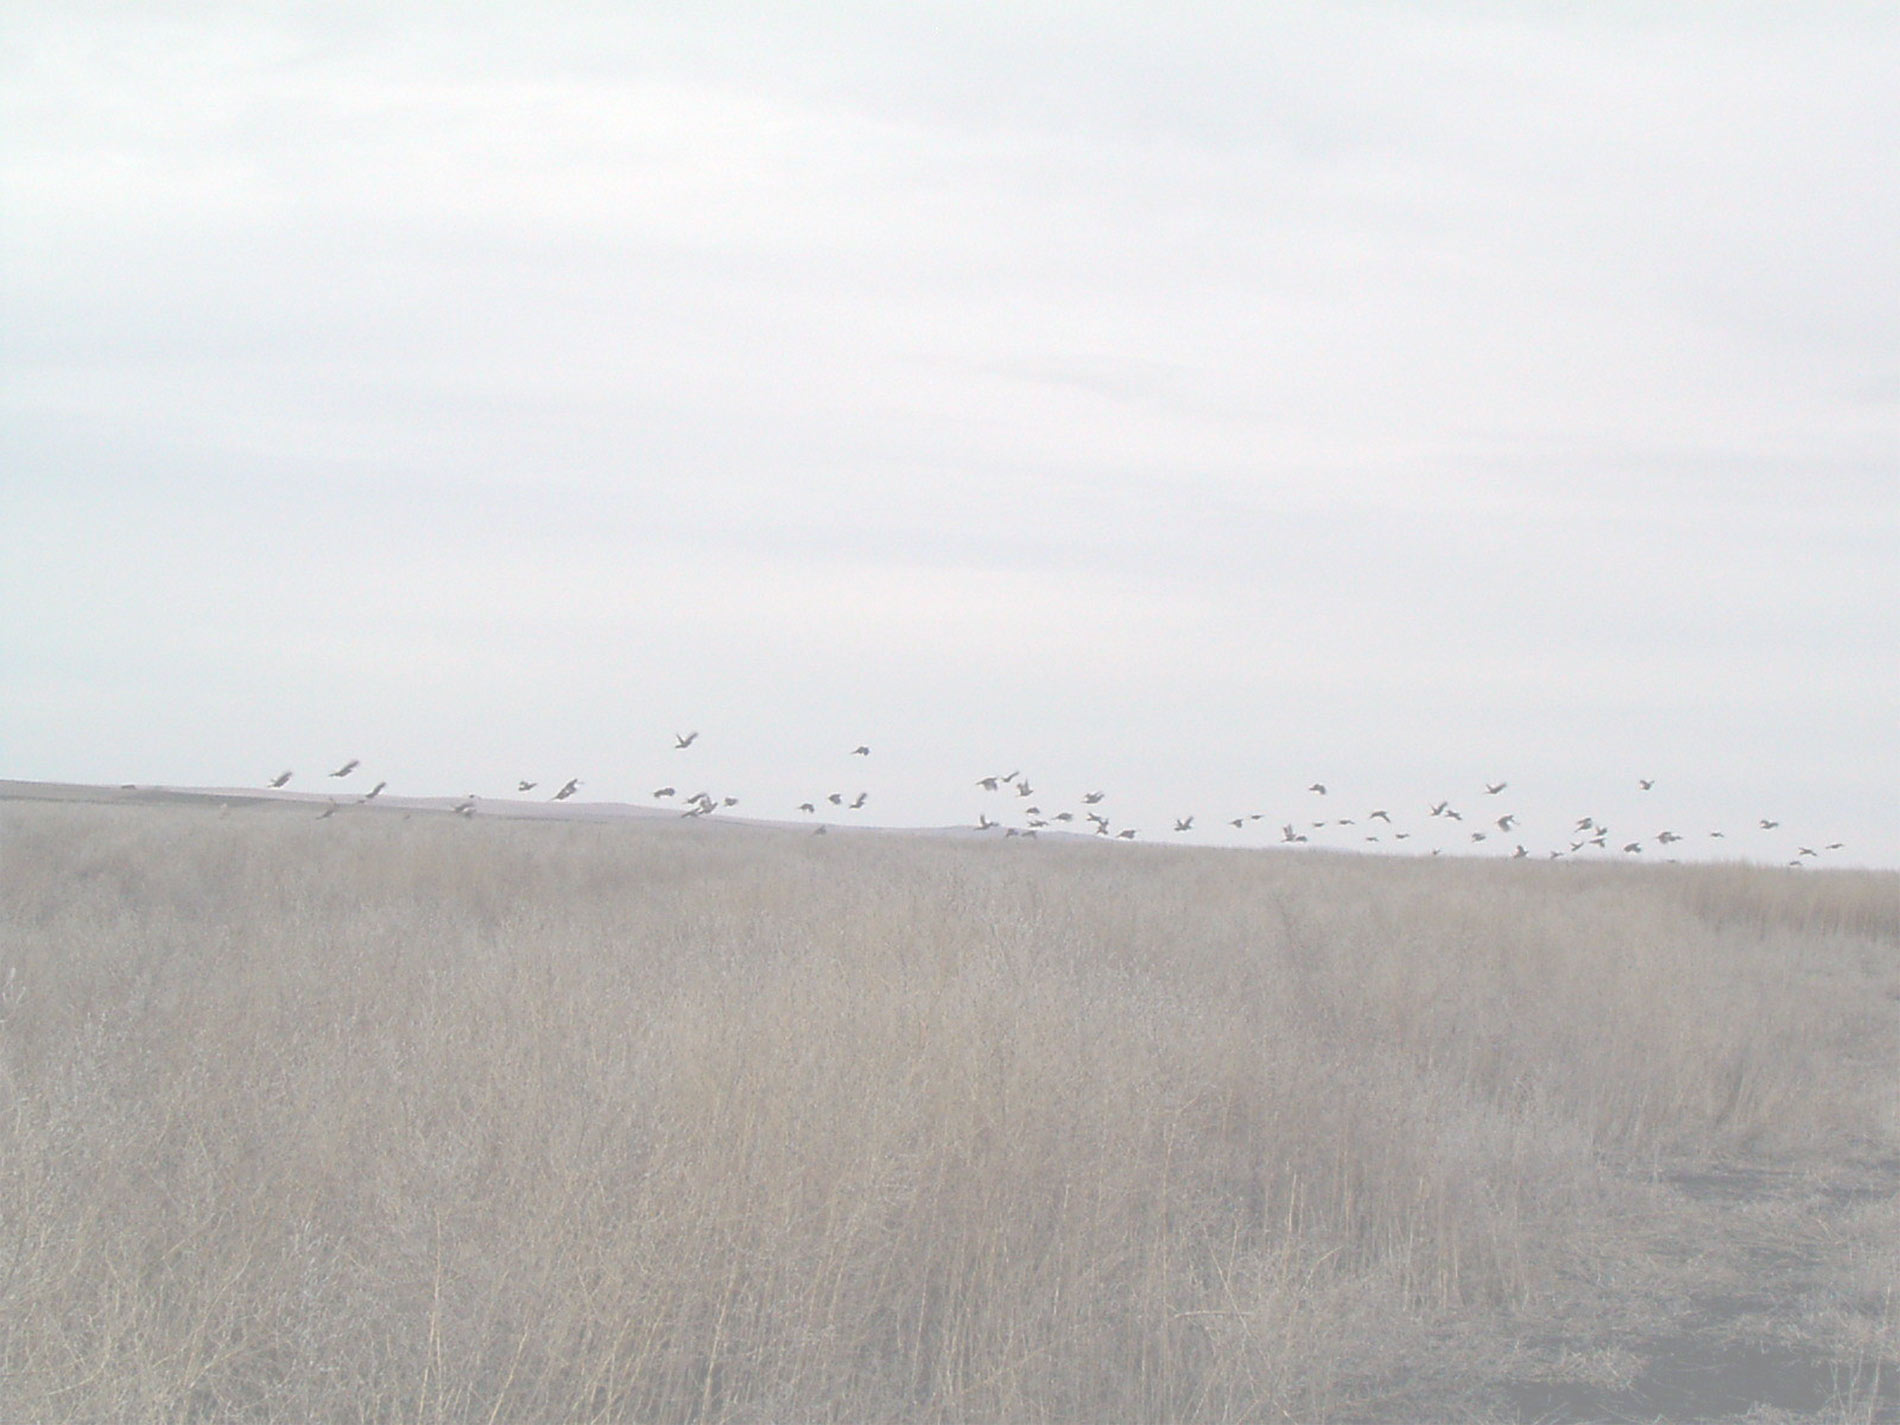 Lots and lots of pheasants